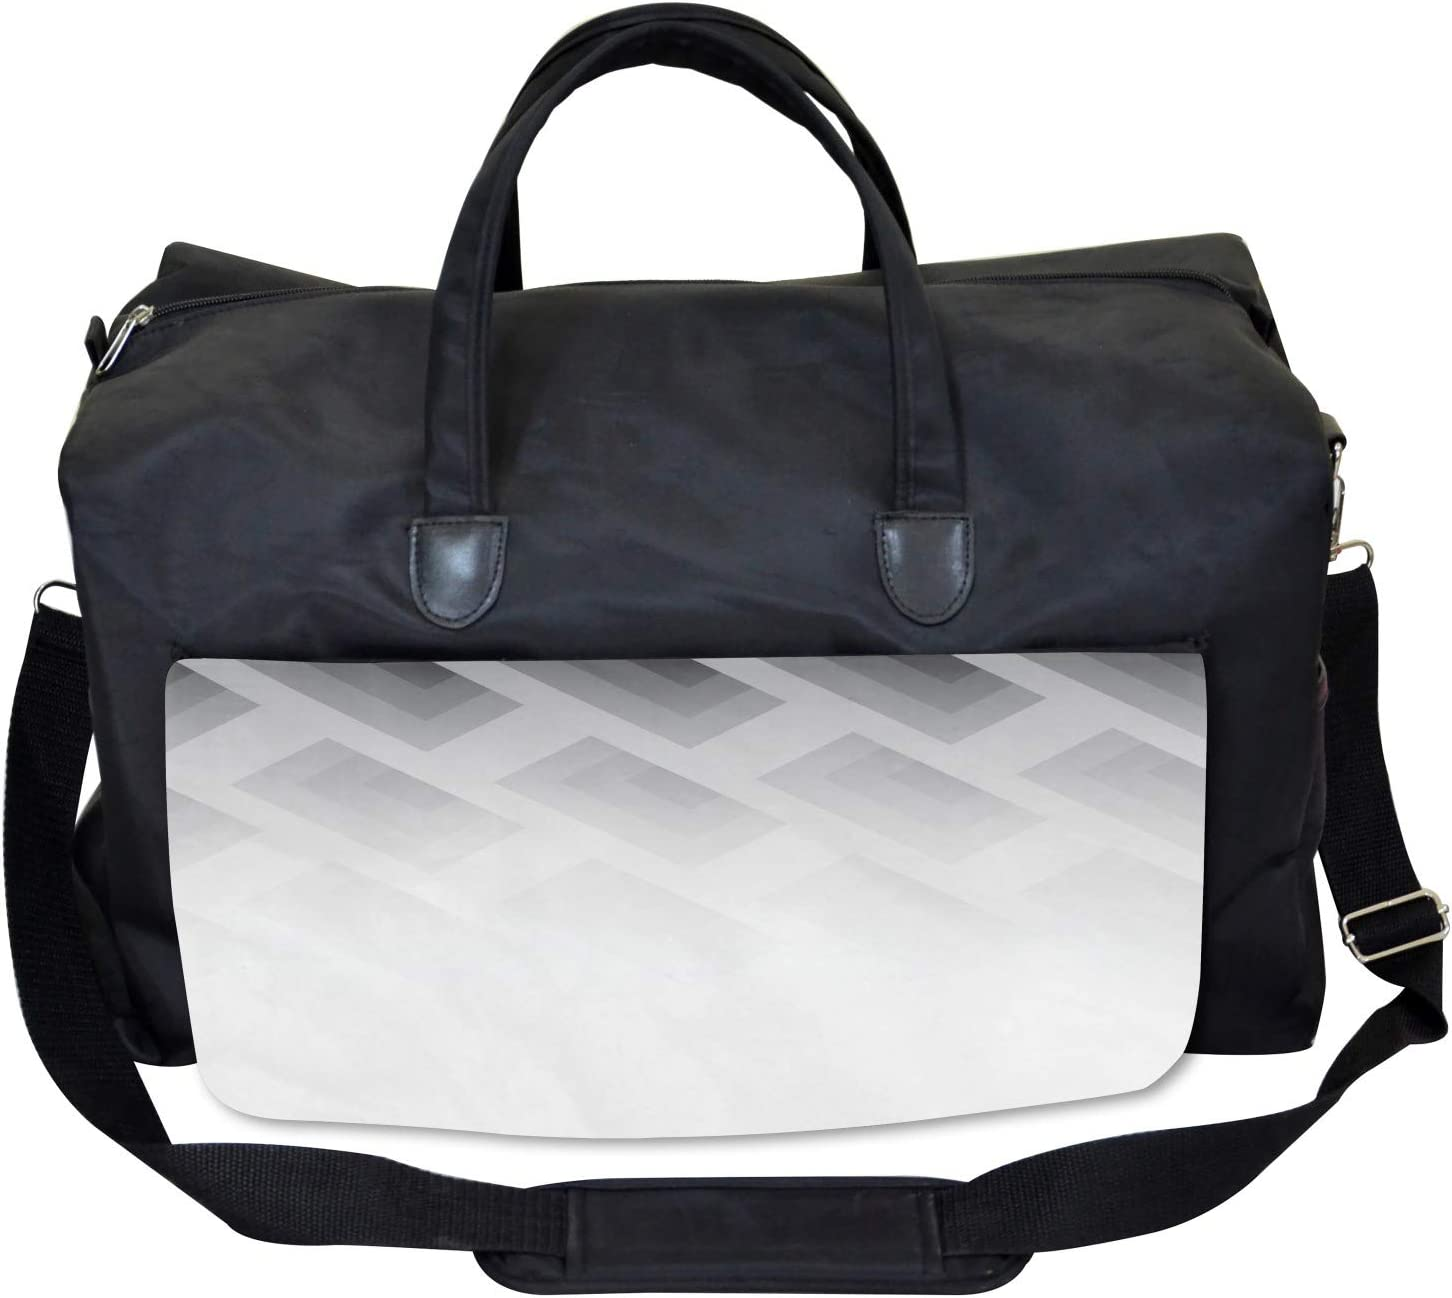 Blur Square Shapes Large Weekender Carry-on Ambesonne Gym Bag